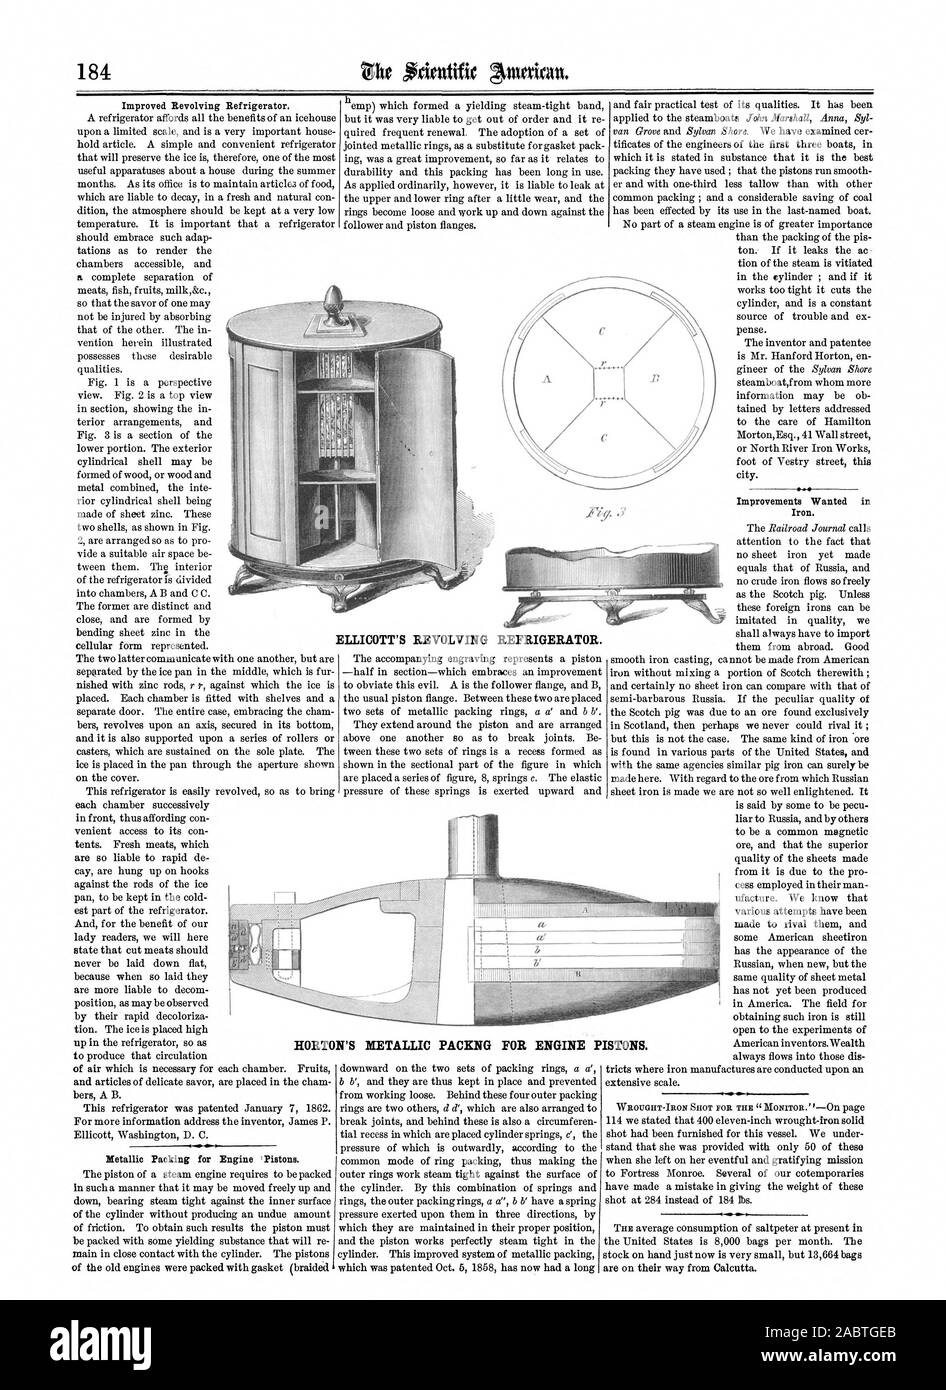 ELLICOTT'S REVOLVING REFRIGERATOR. HORTON'S NETALLIC PACKNG FOR ENGINE PISTONS., scientific american, 1862-03-22 Stock Photo